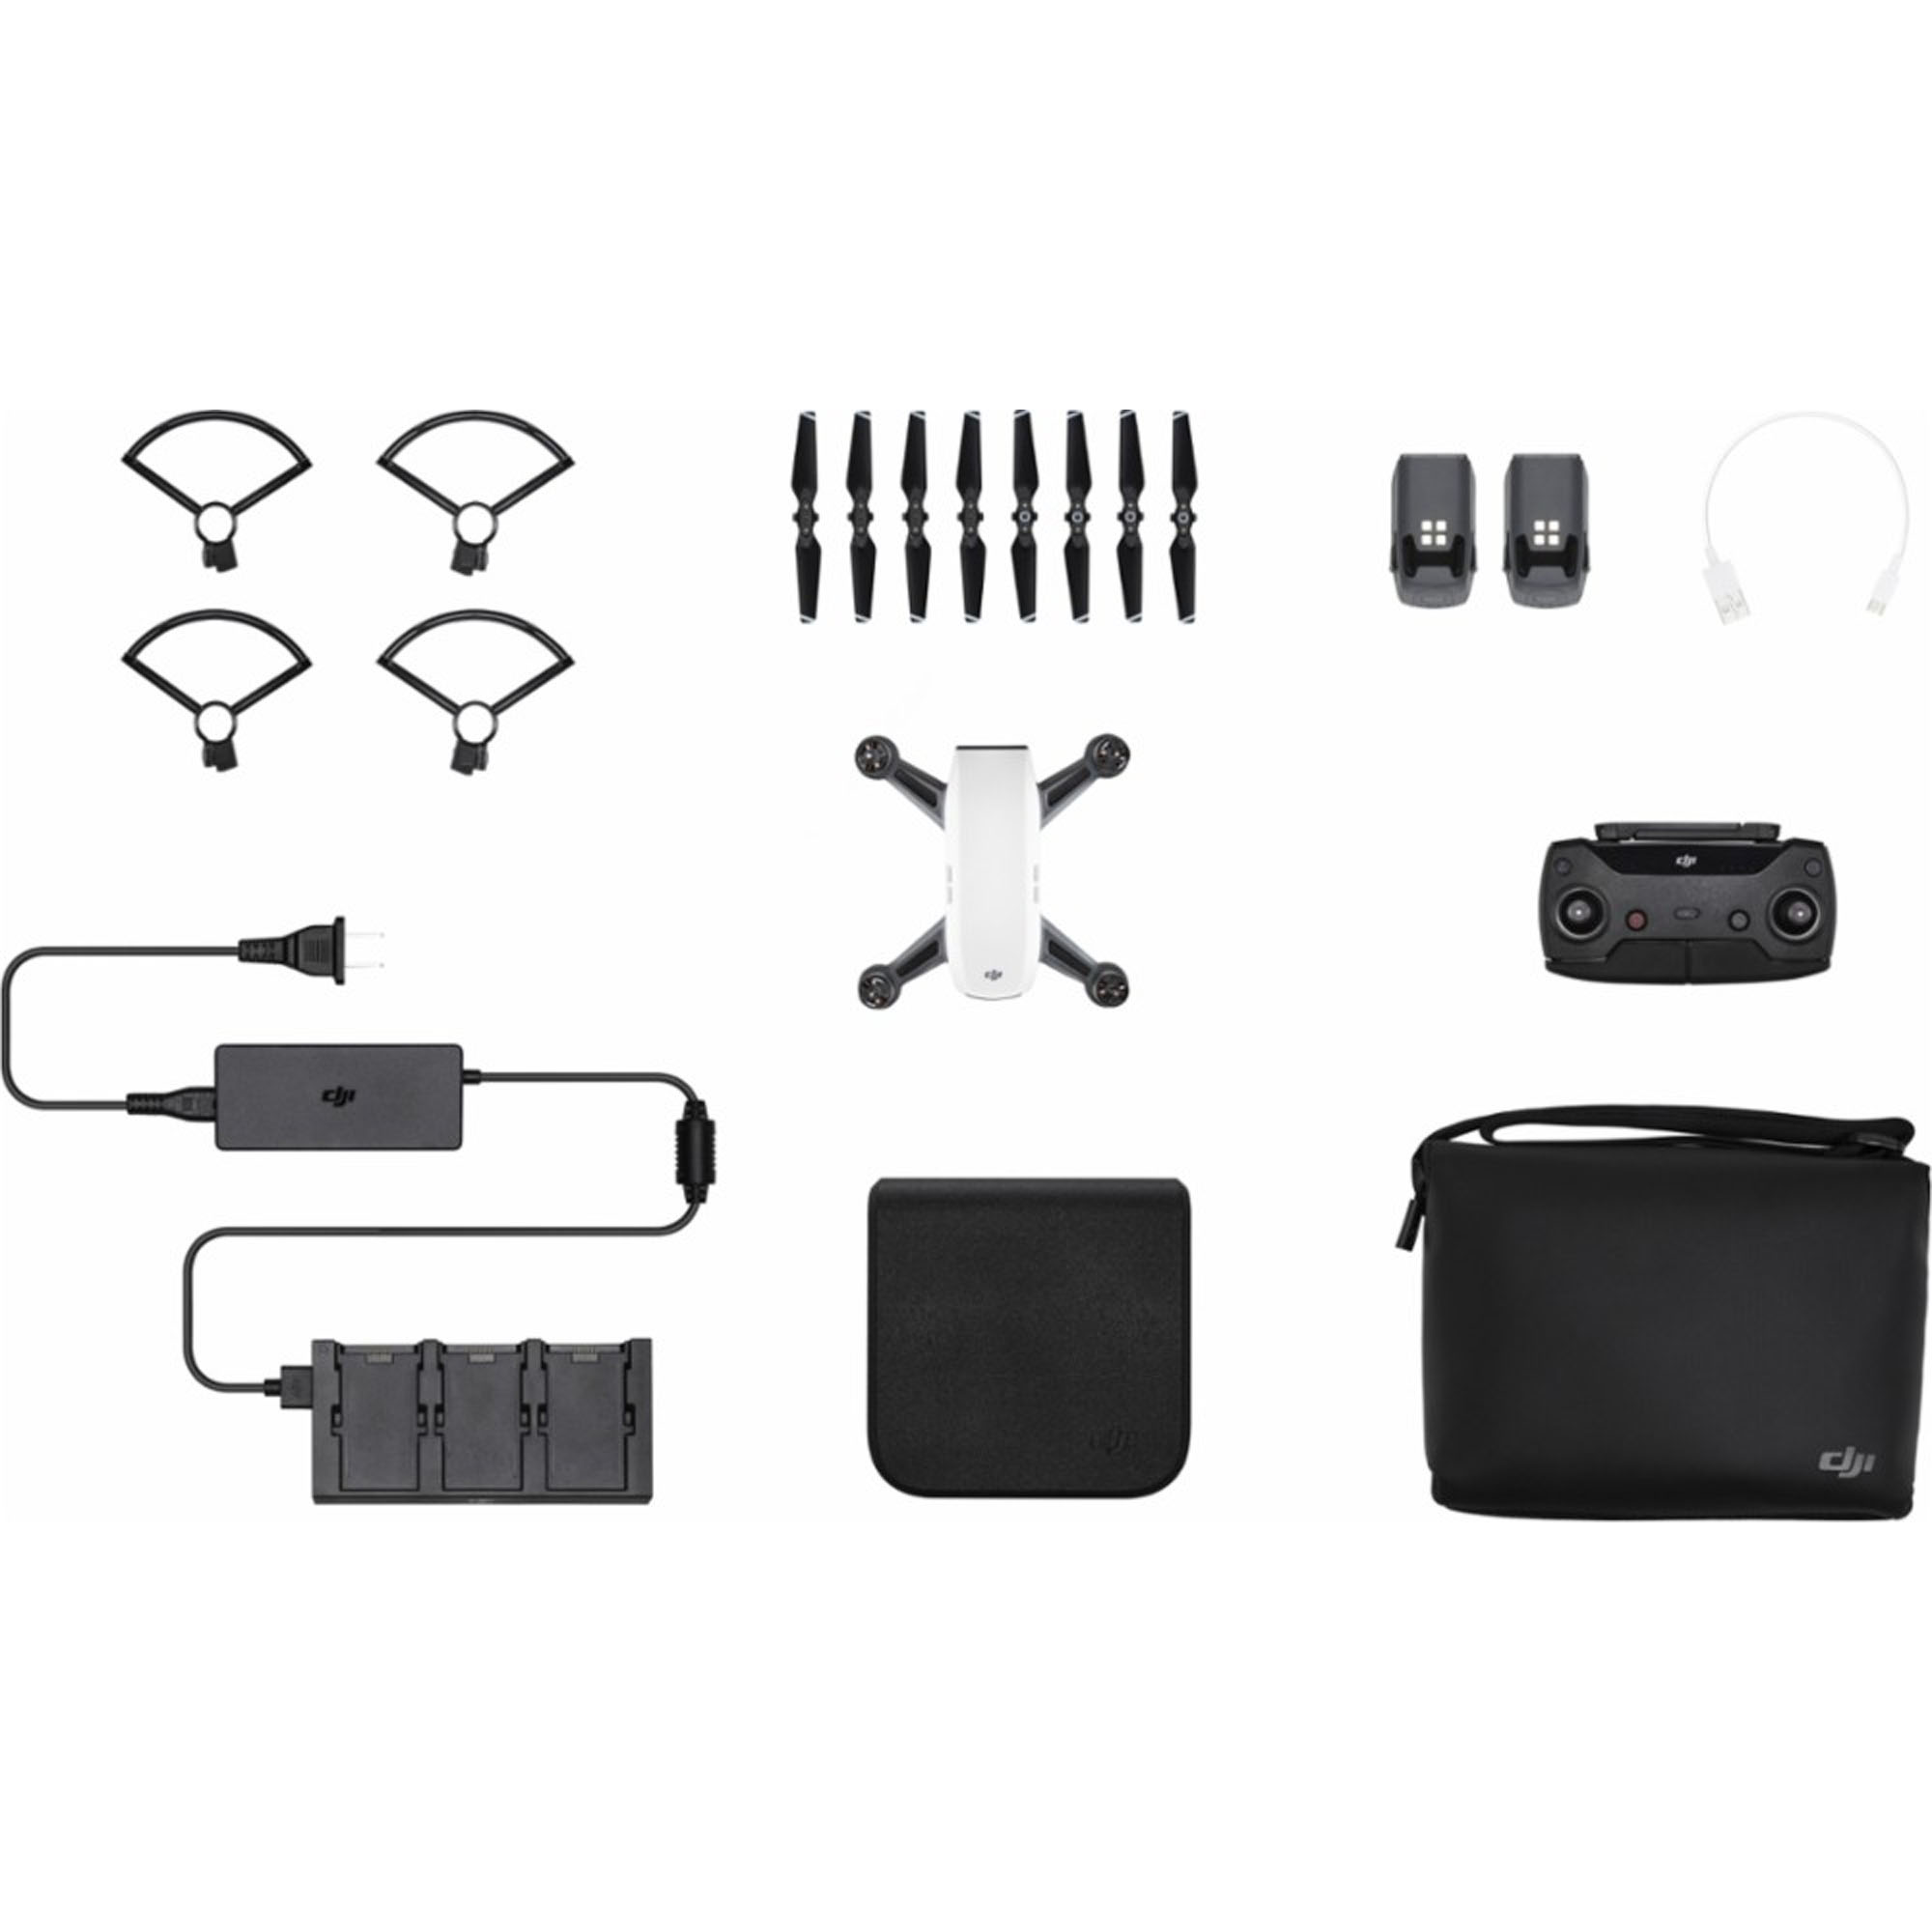 Dji Spark Fly More Combo Drone - Alpine White